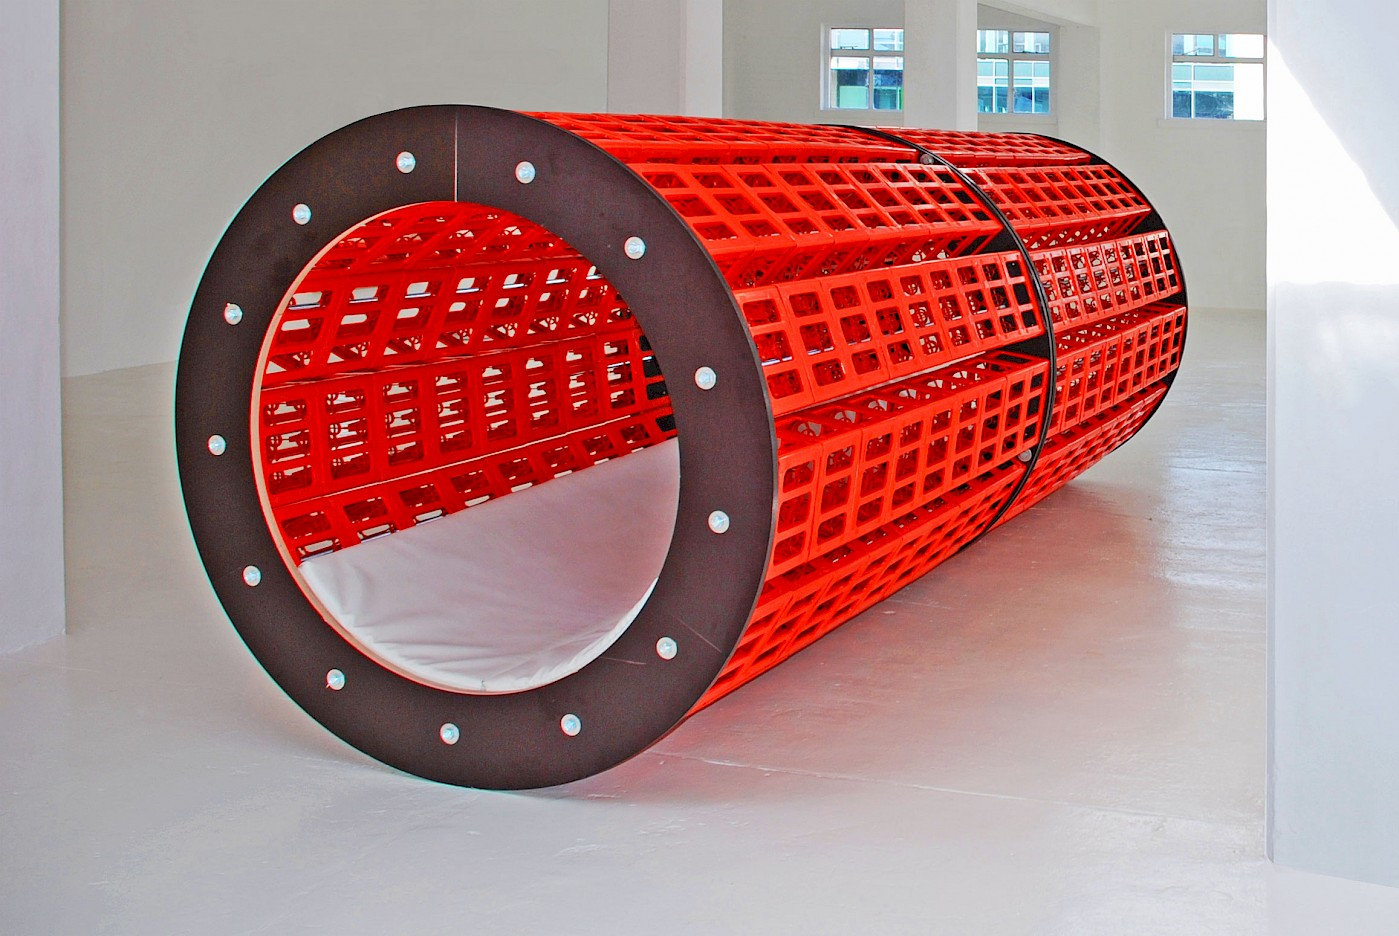 Winter/Hoerbelt, Red Tube, 2016 © VG Bild-Kunst, Bonn 2019